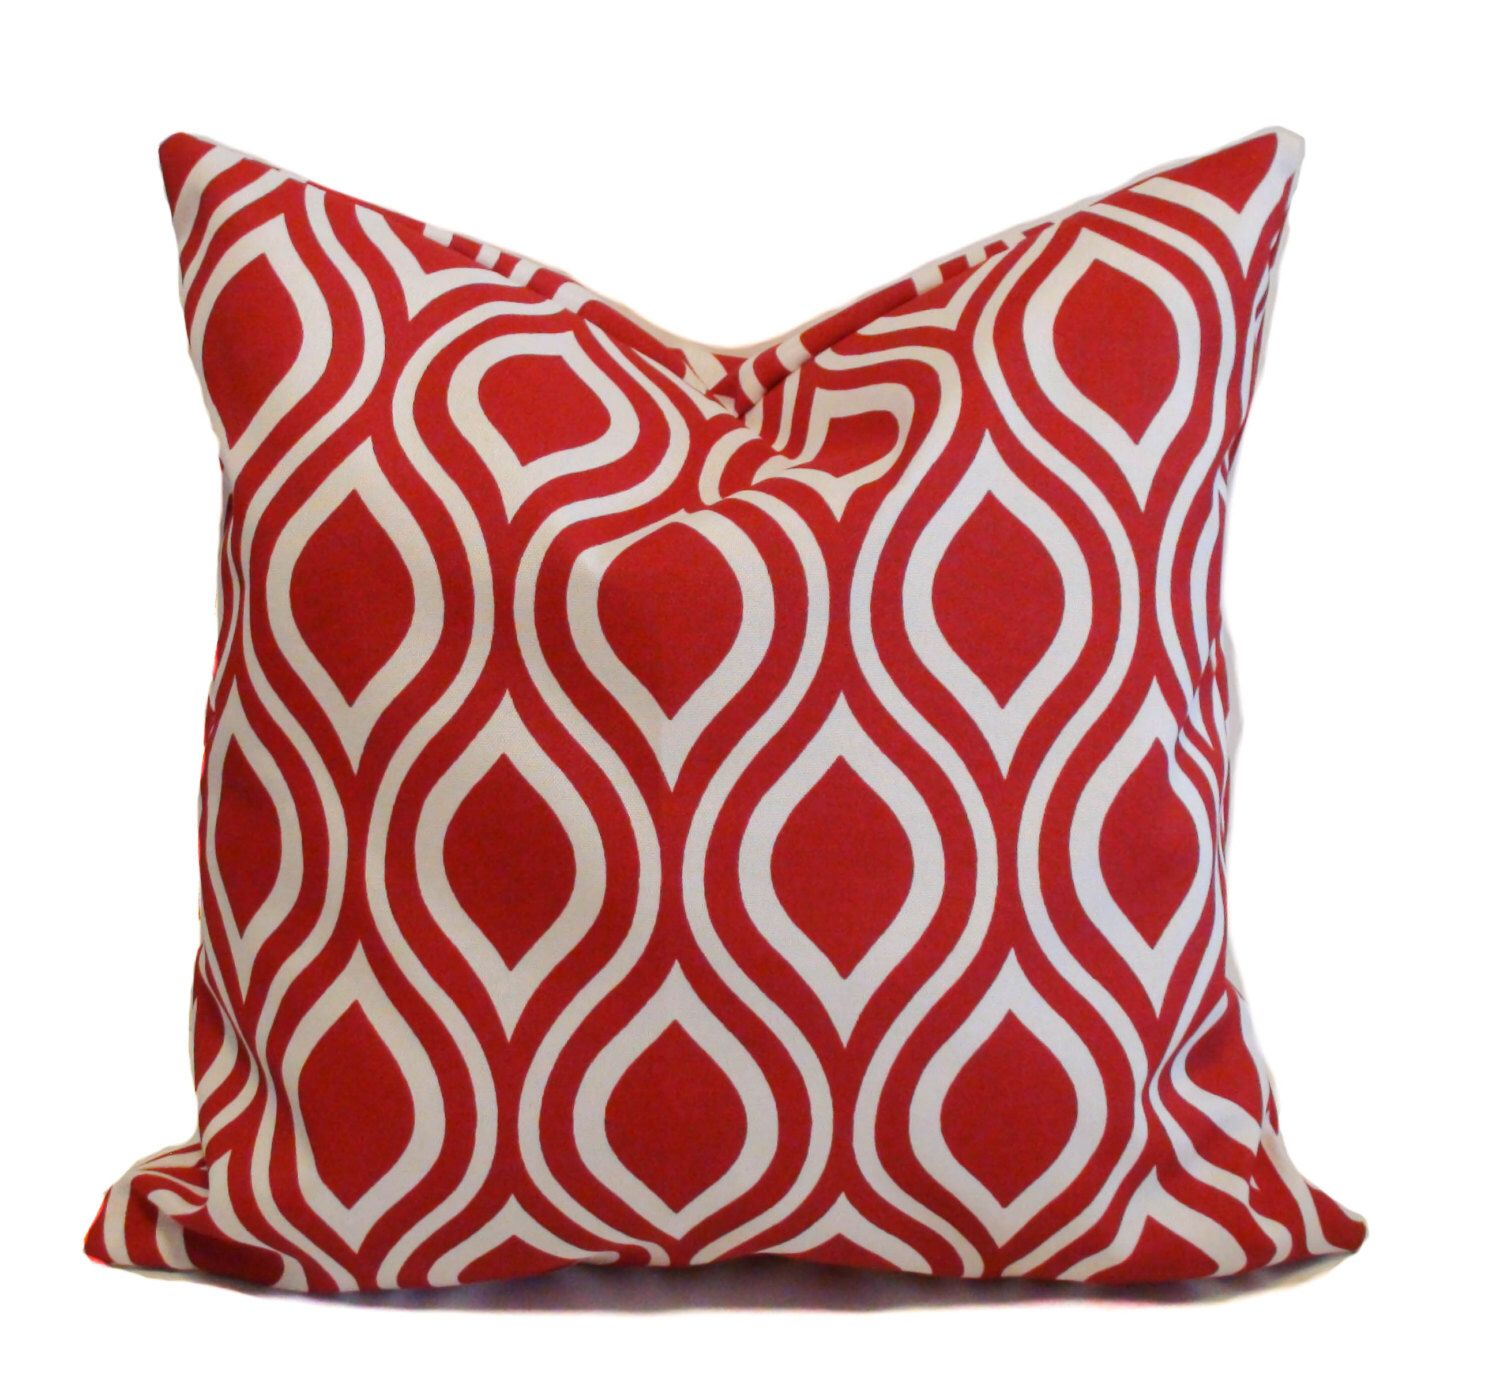 Outdoor pillow cover, 15x15, Outdoor decorative pillow, Outdoor ...